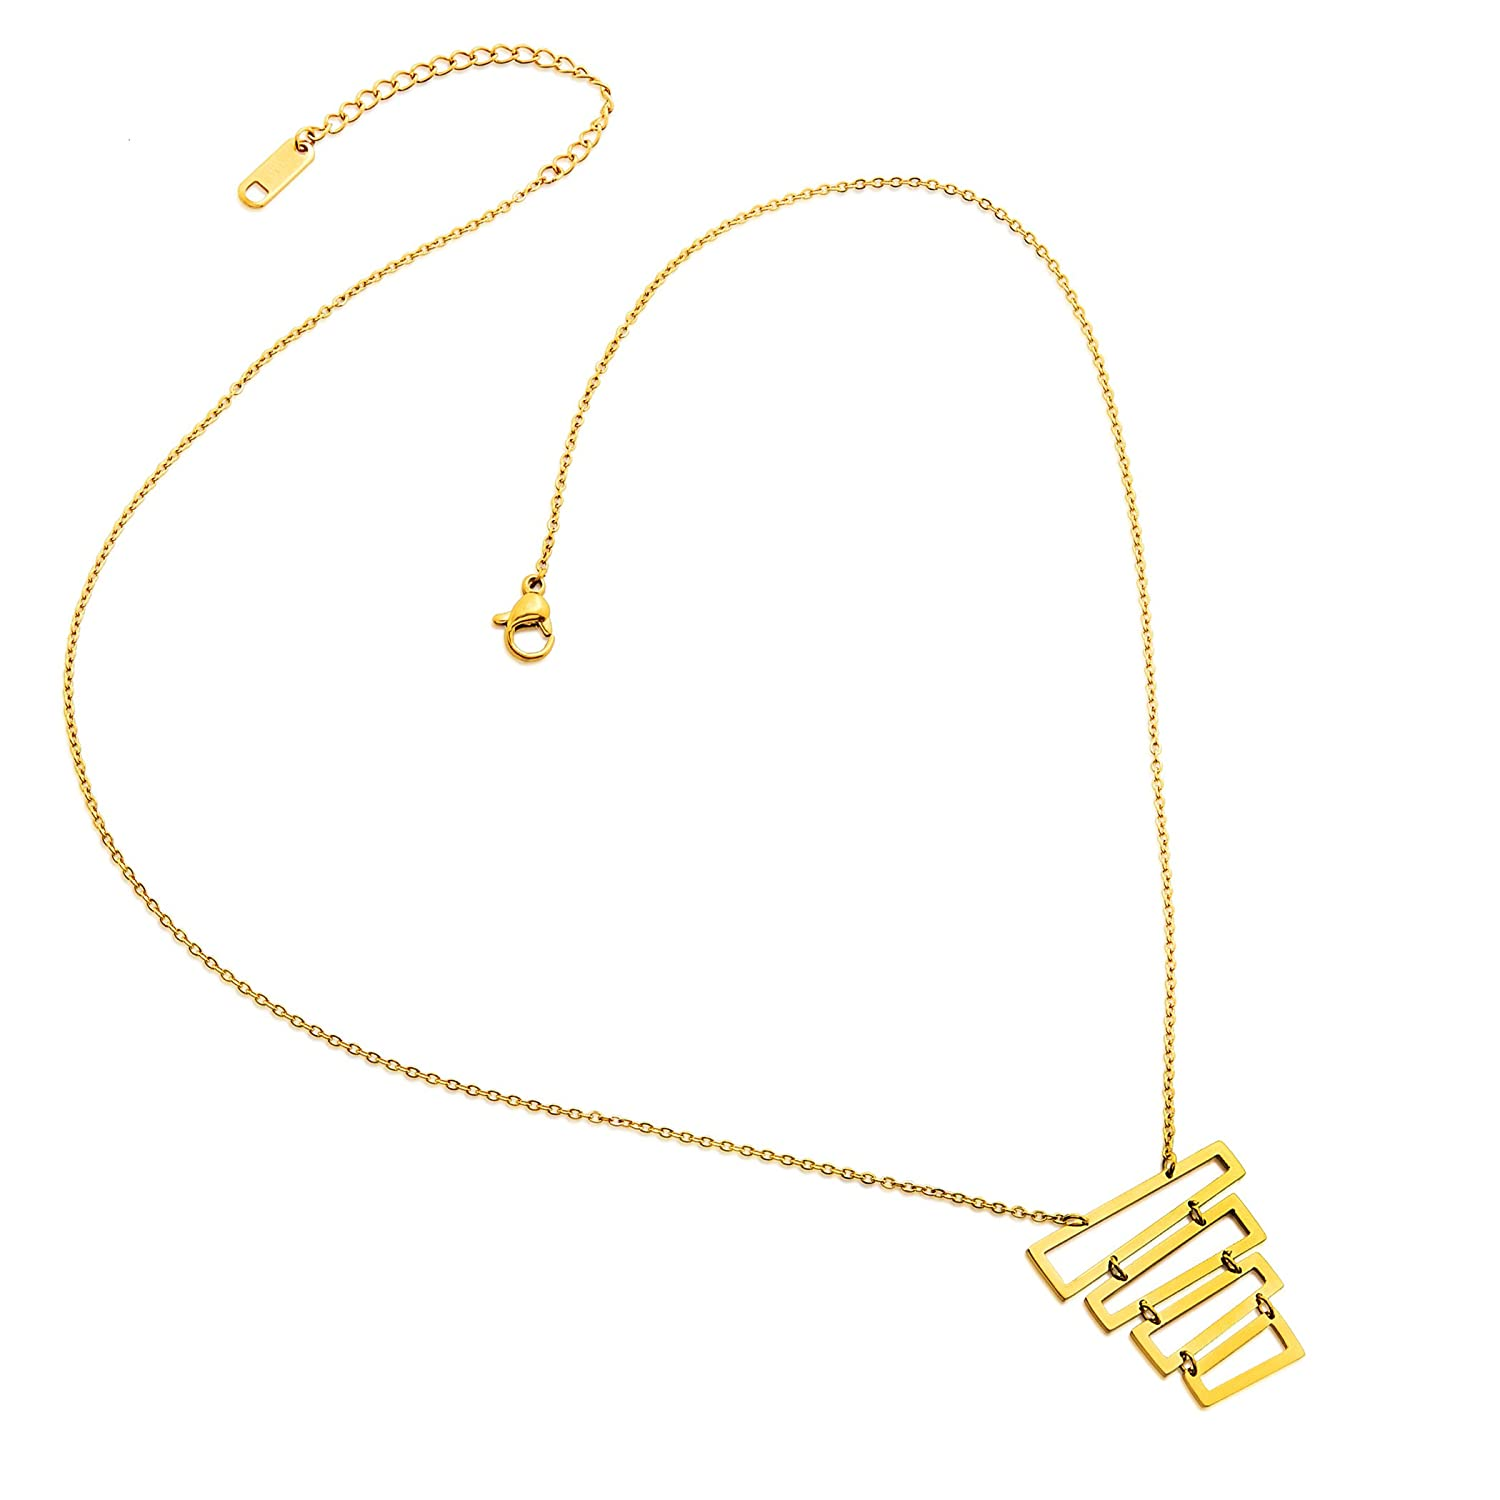 One Size ELYA Jewelry Womens Gold Plated Gold Plated Polished Rectangles Stainless Steel Pendant Necklace